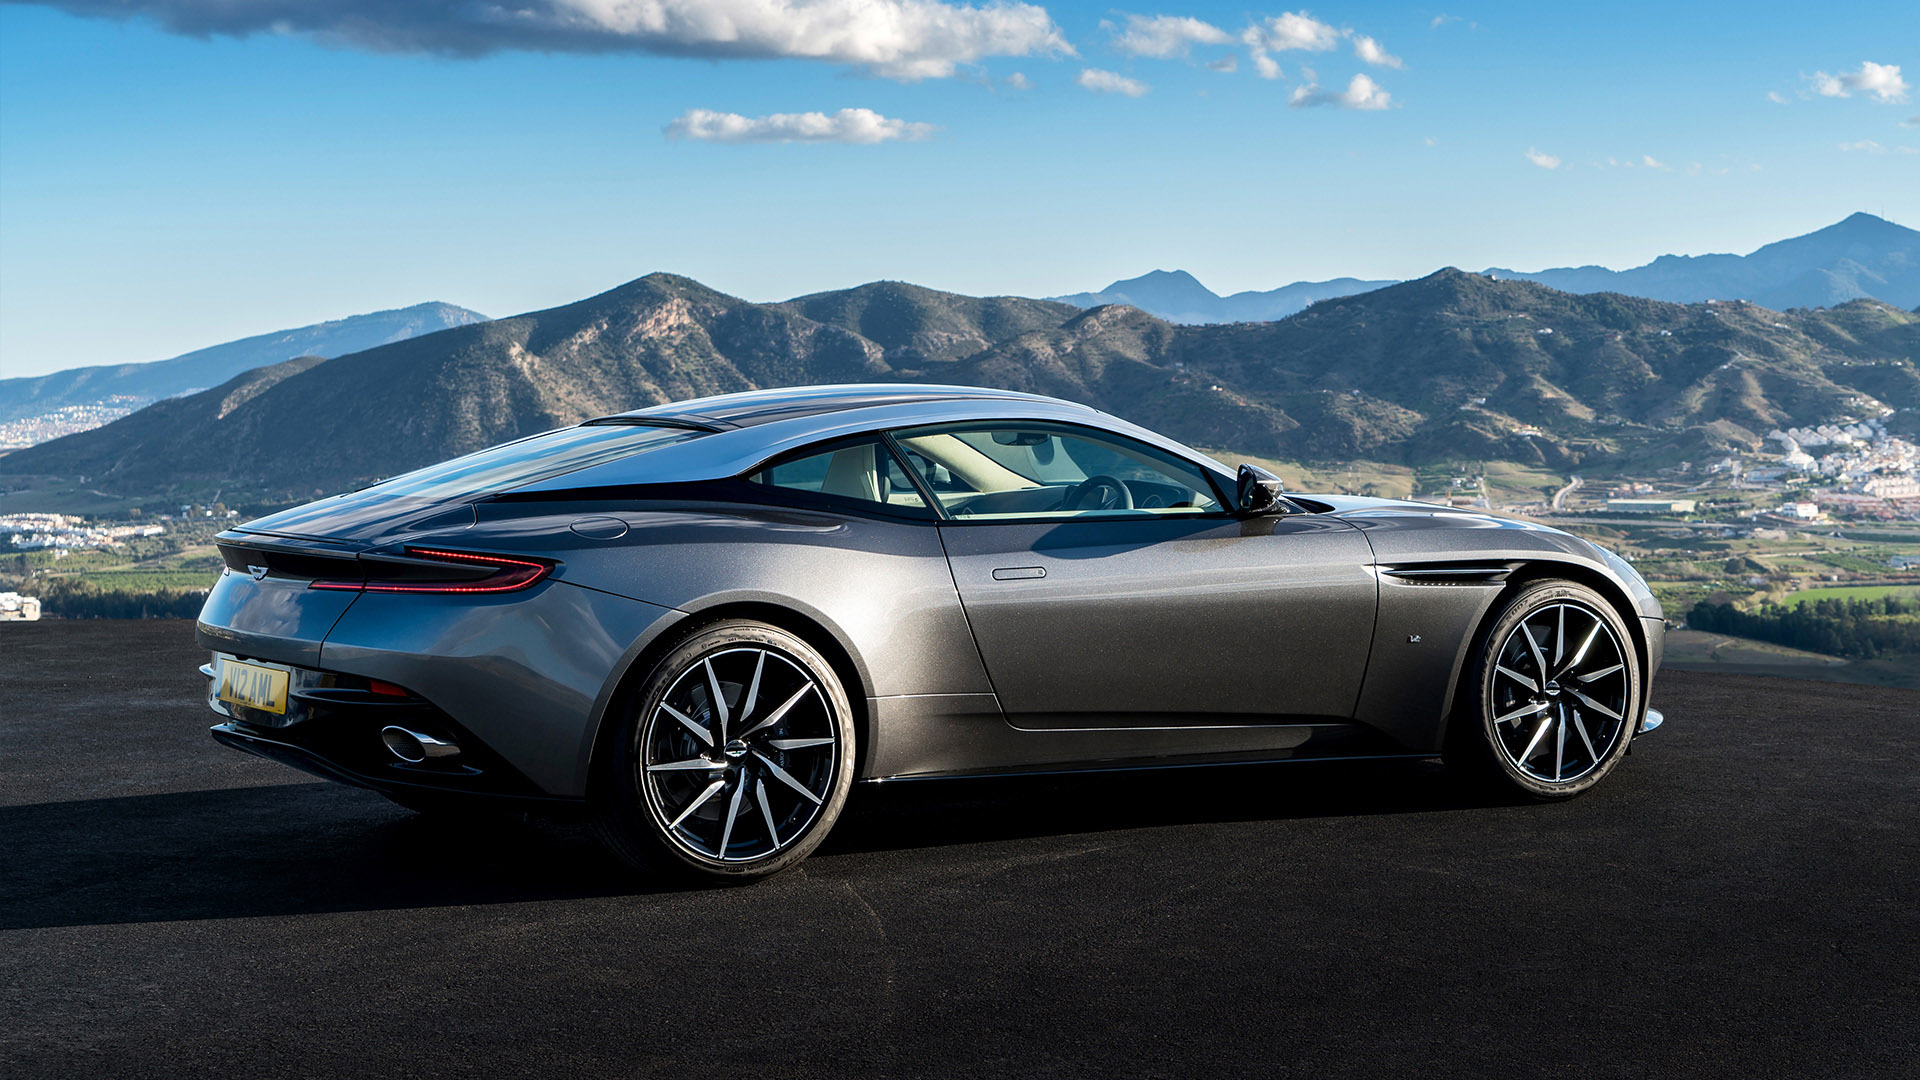 Amazing Aston Martin Pictures & Backgrounds